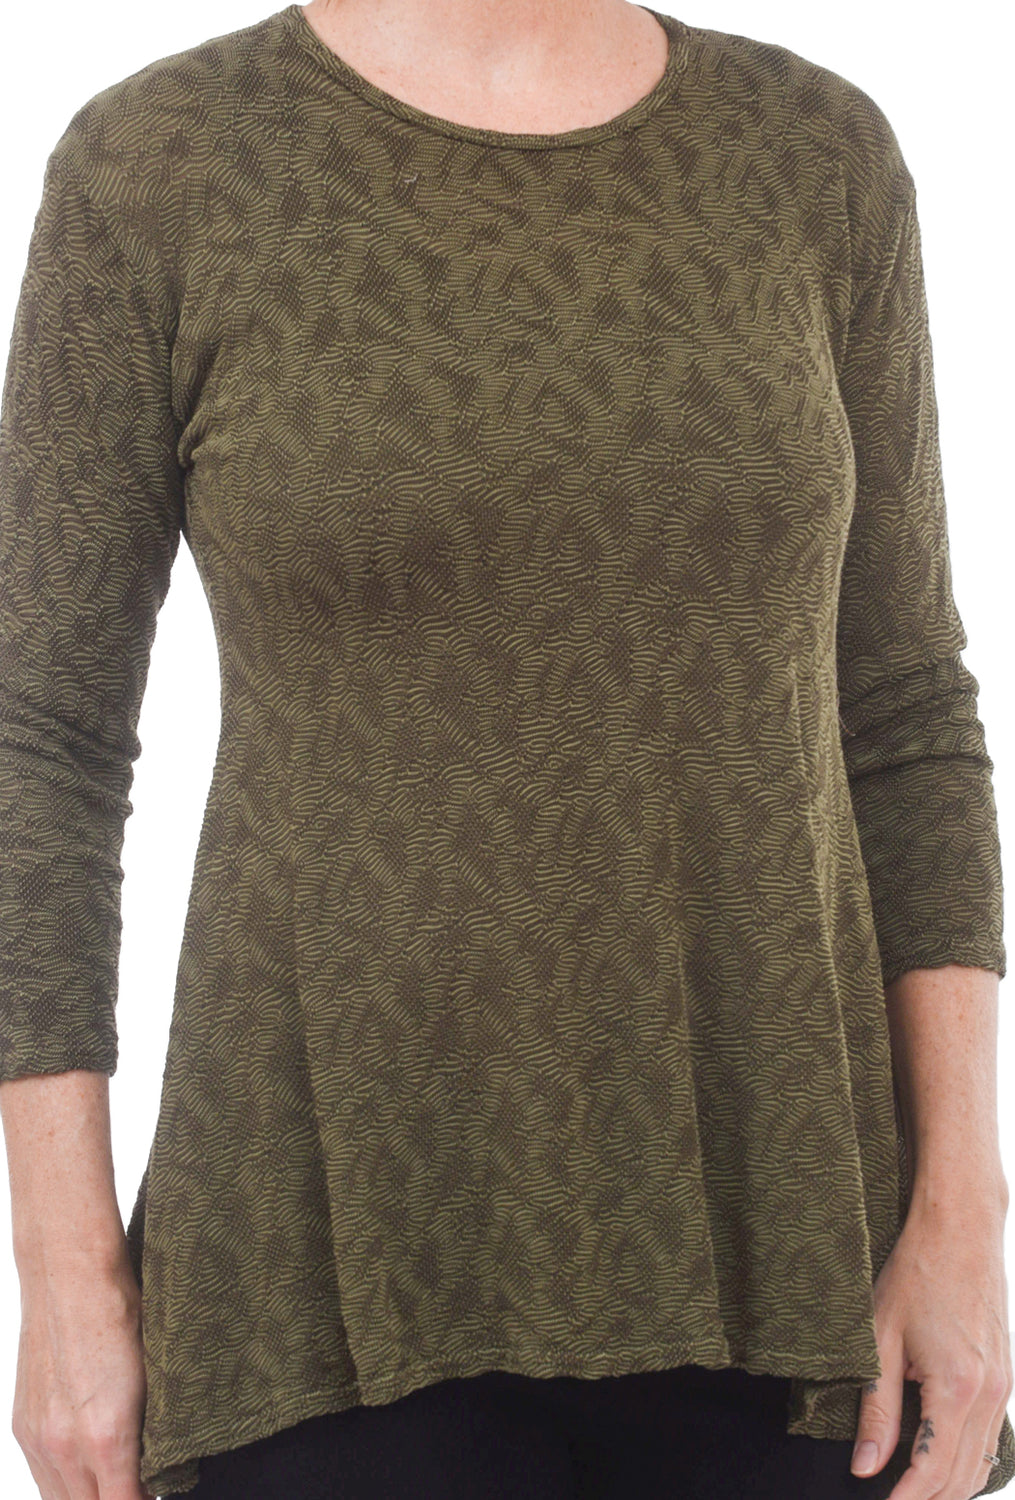 Needlepoint Texture Top, Gris